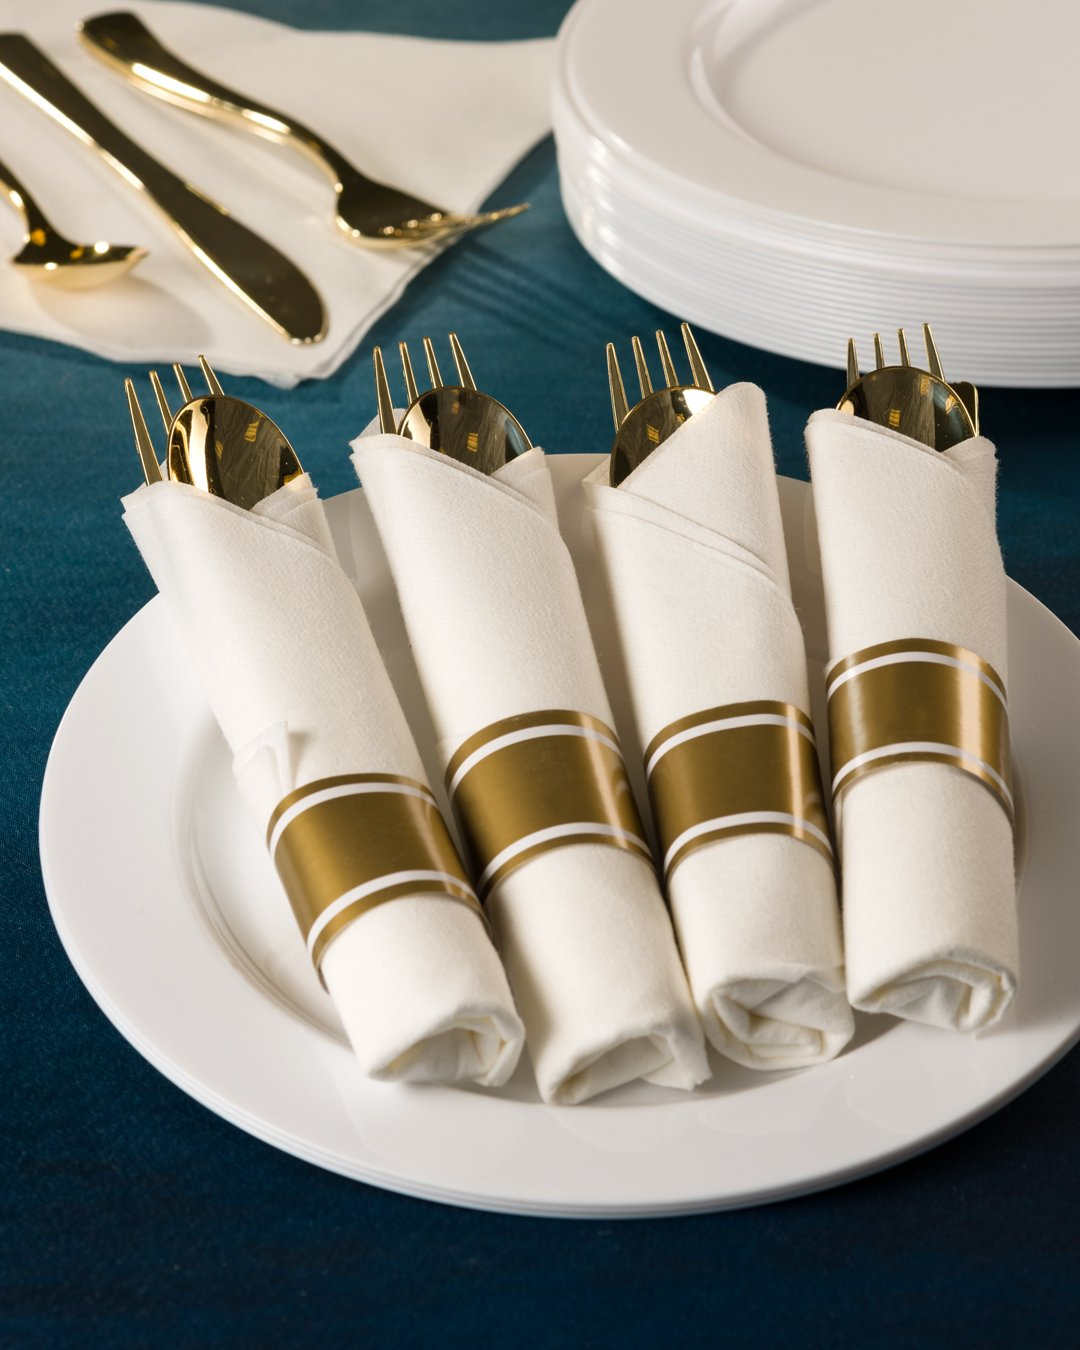 Premium Plastic Pre-Rolled Combo Cutlery<br/>Includes: Soupspoon, Teaspoon, Fork, Knife, and Napkin